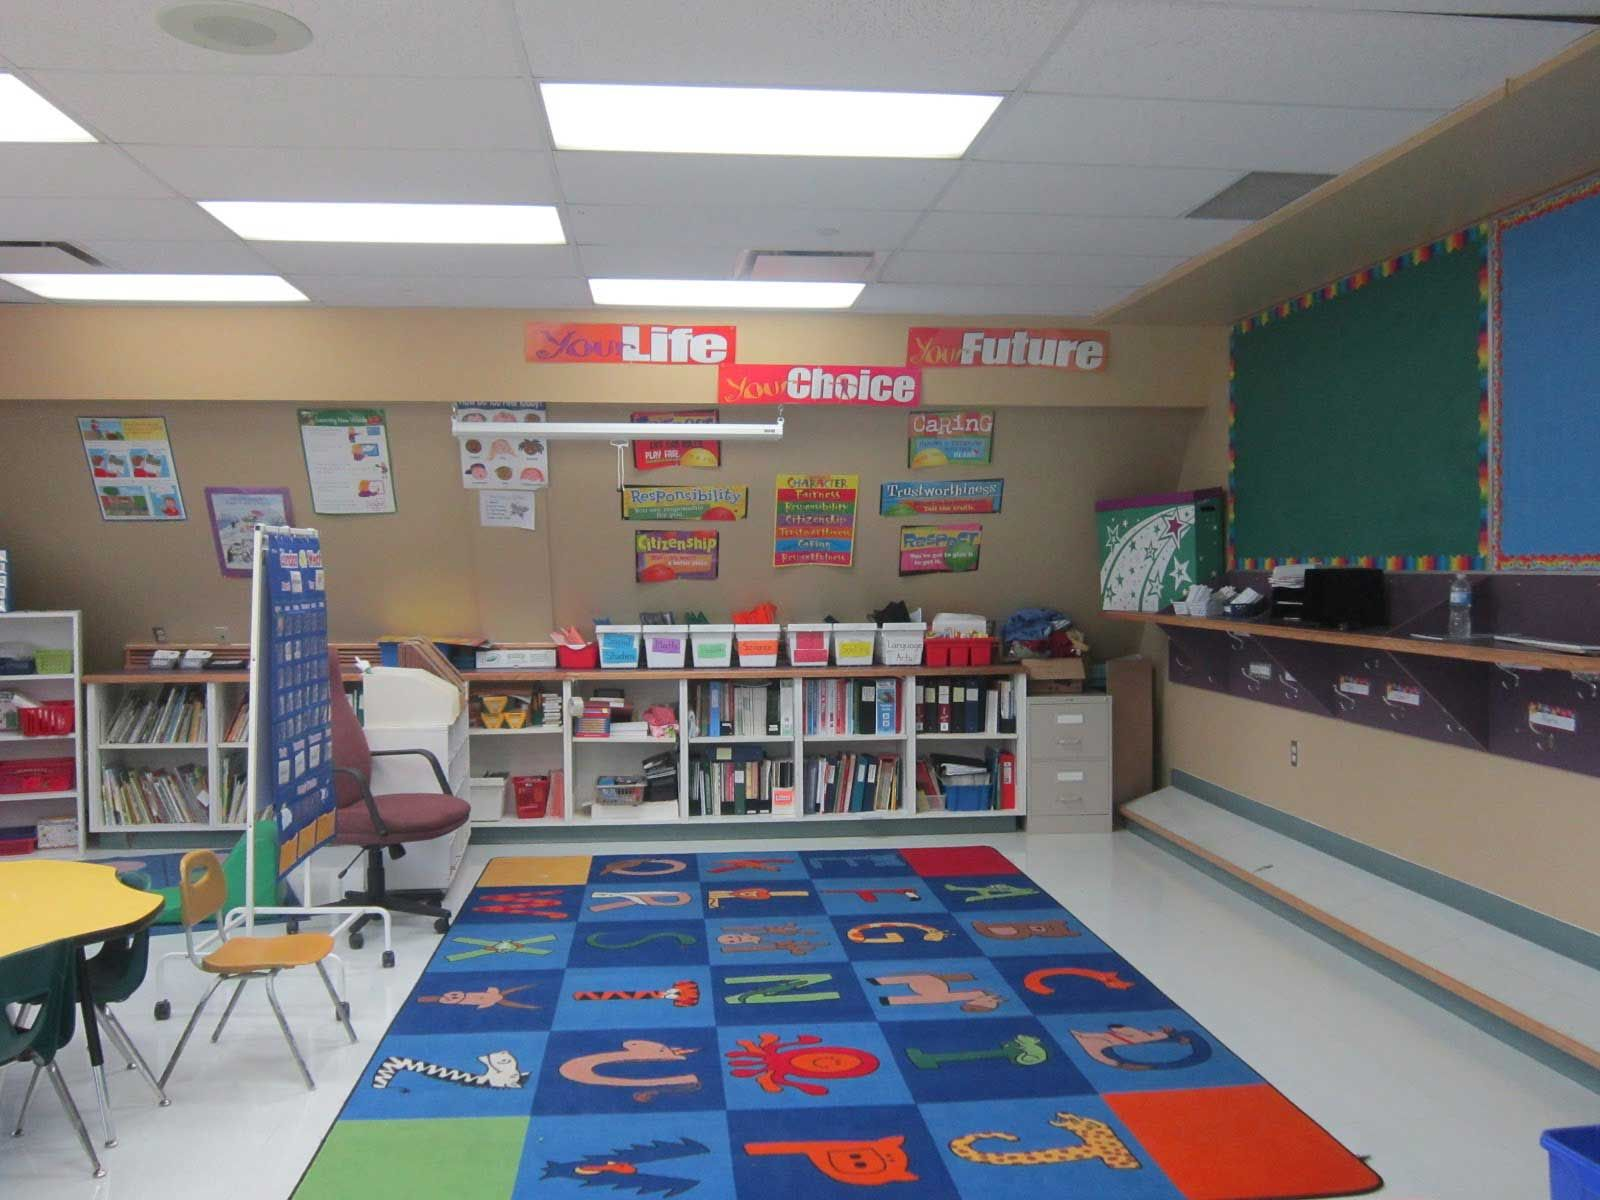 Kids school interior design - Cool Interior Design Schools Kids Room Also Flower Motif Kids Room Schools Furniture Sets With Animal Flooring Motif Room Schools Concept With Modern